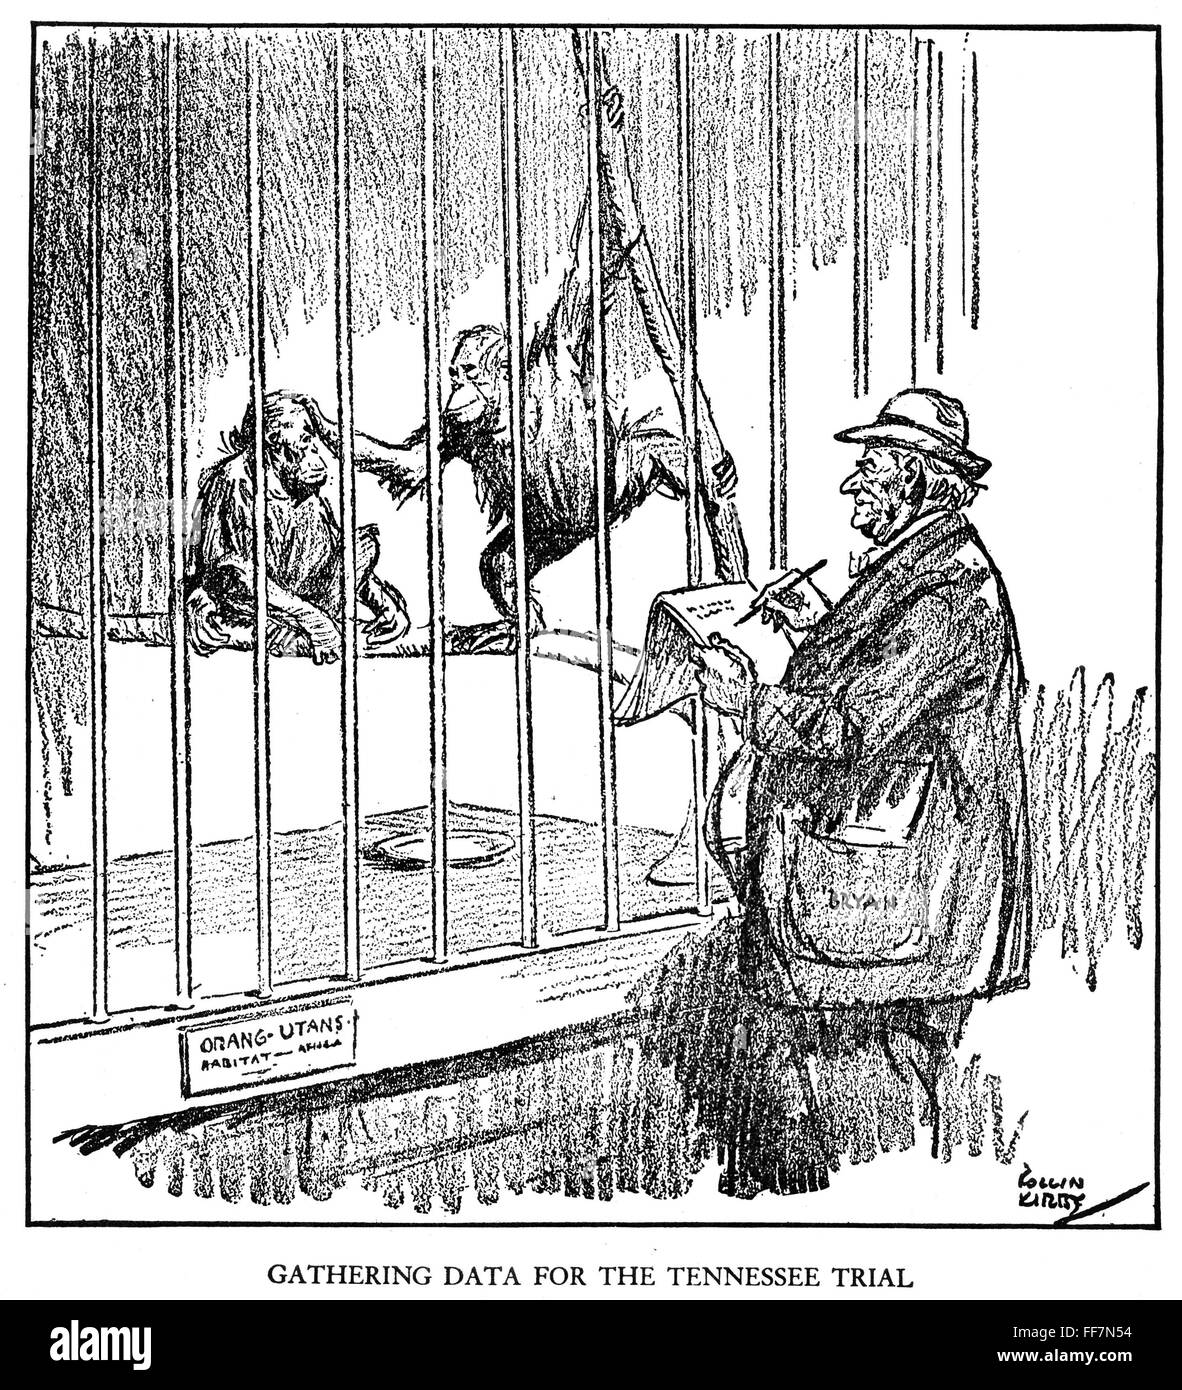 Scopes Trial Cartoon 1925 N Gathering Data For The Tennessee